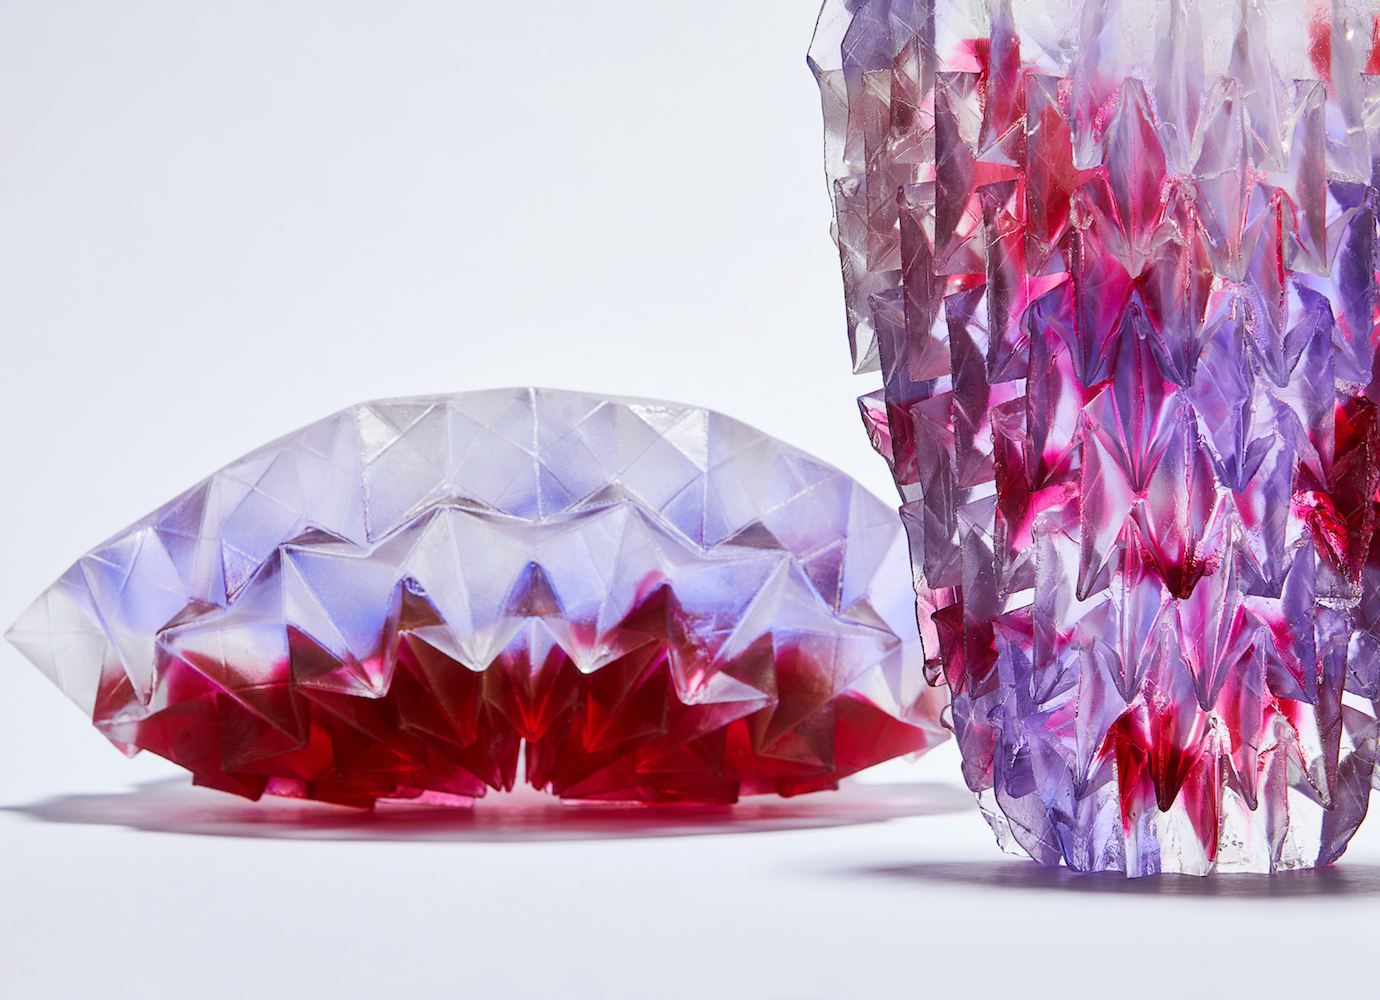 Translucent objects become metaphors for ambiguity at Tallinn's Applied Art Triennial